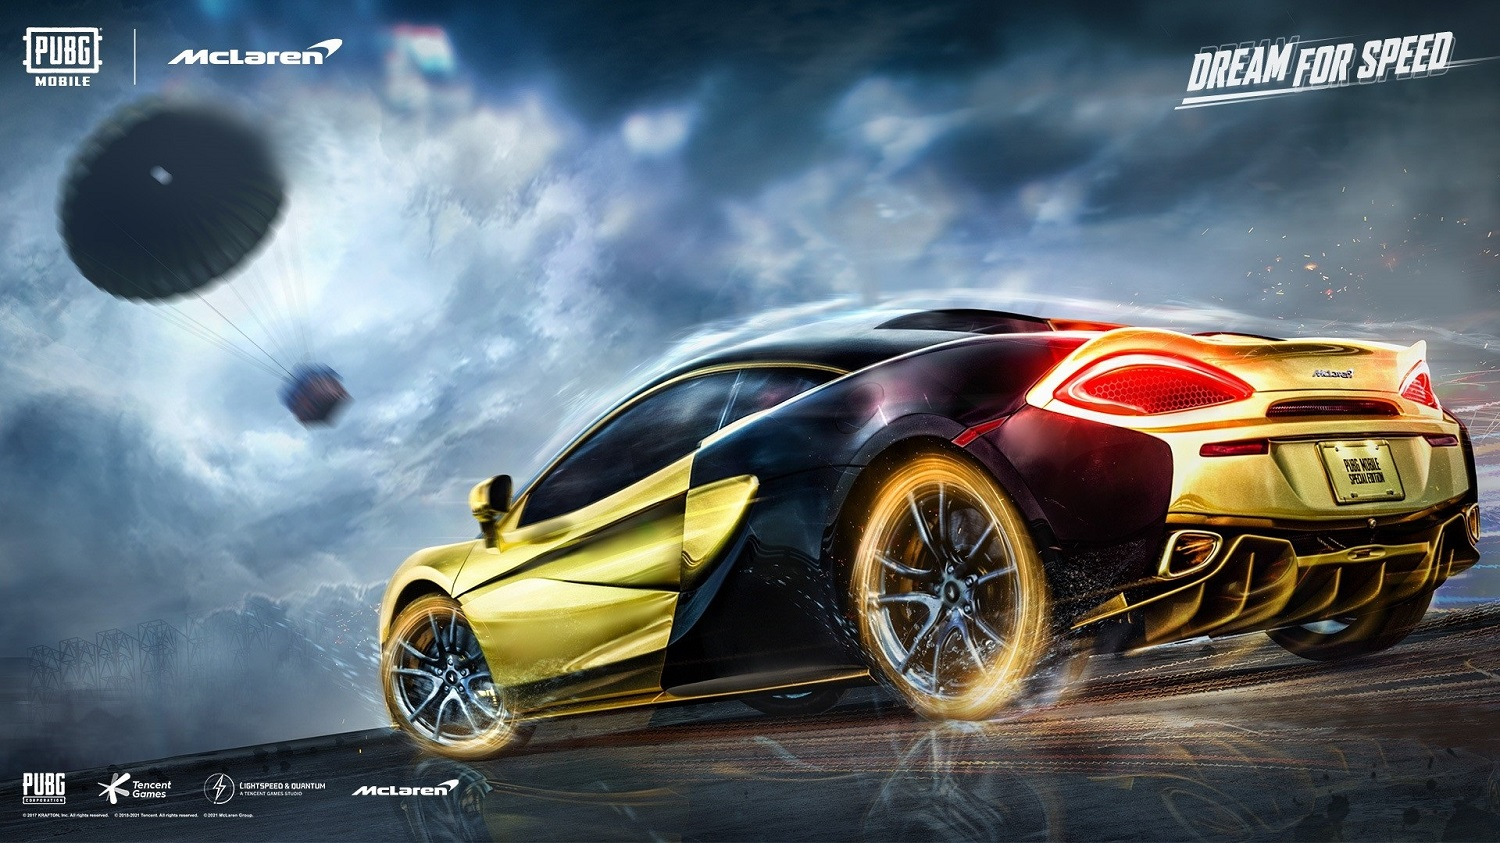 PUBG Mobile Is Dropping The Legendary Supercar McLaren 570S On The Game